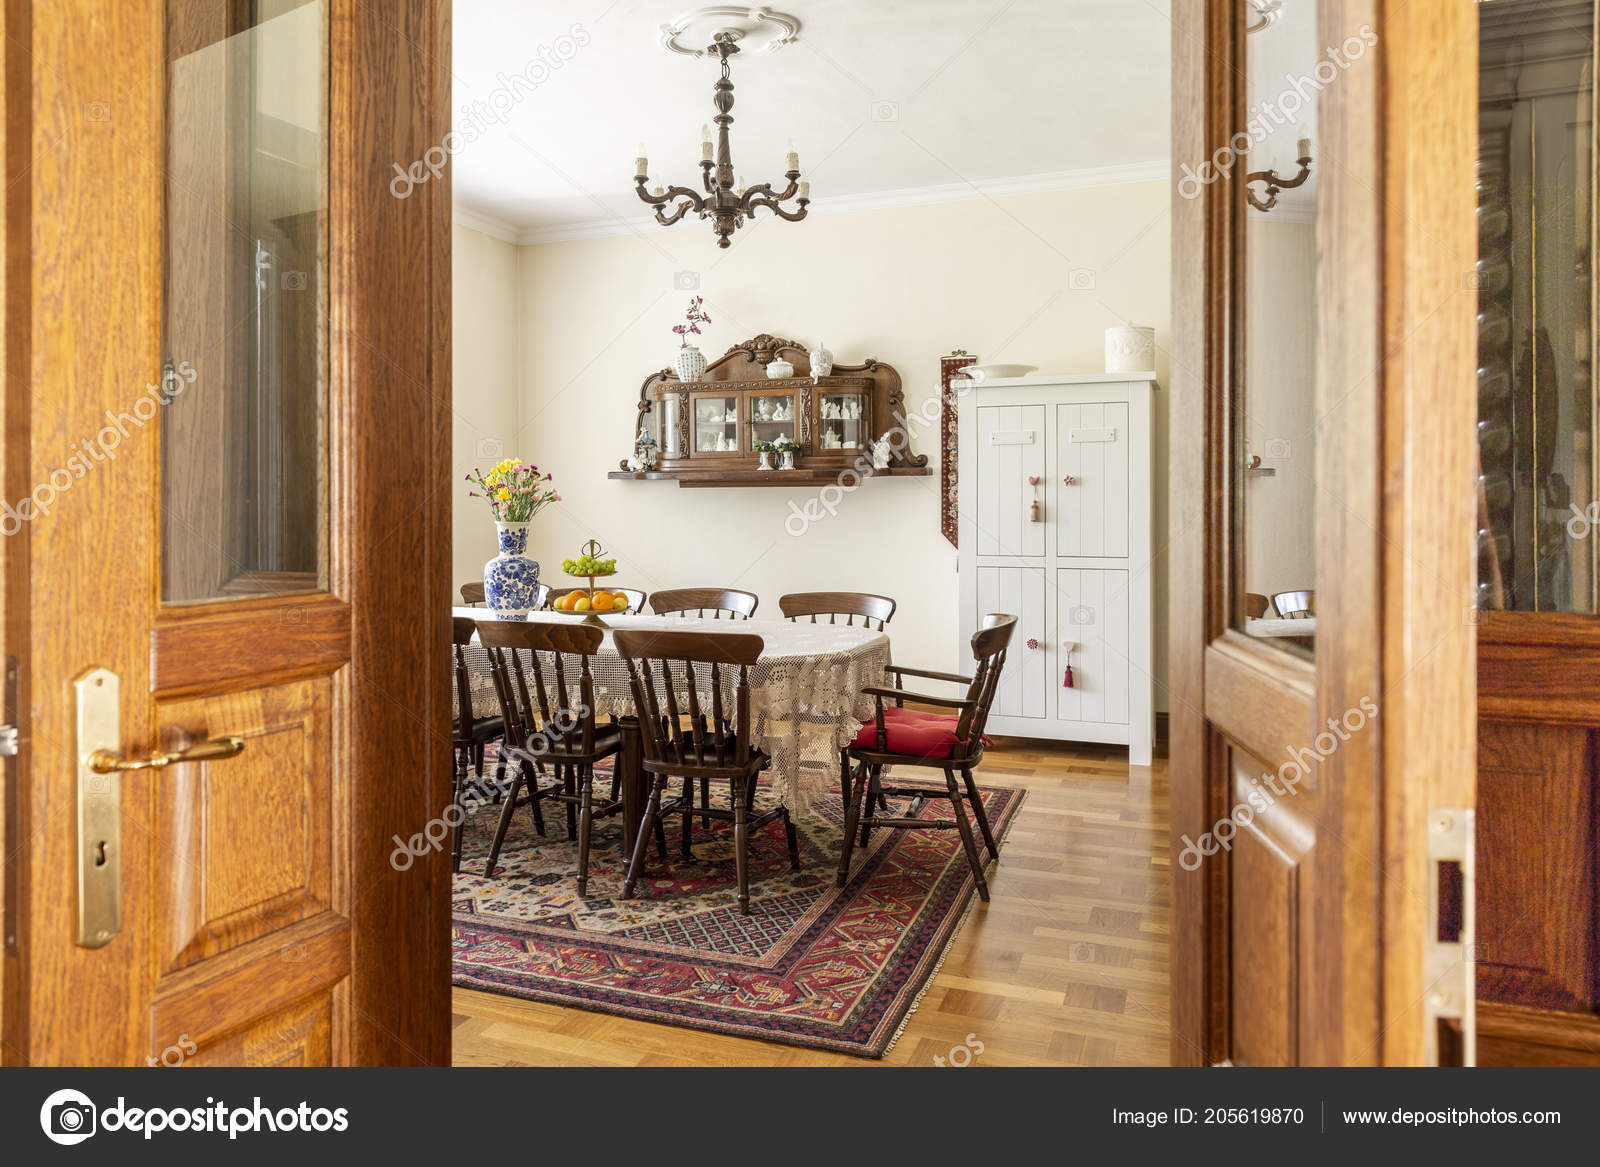 Real Photo Antique Dining Room Interior Big Table Chairs Wall Stock Photo C Photographee Eu 205619870